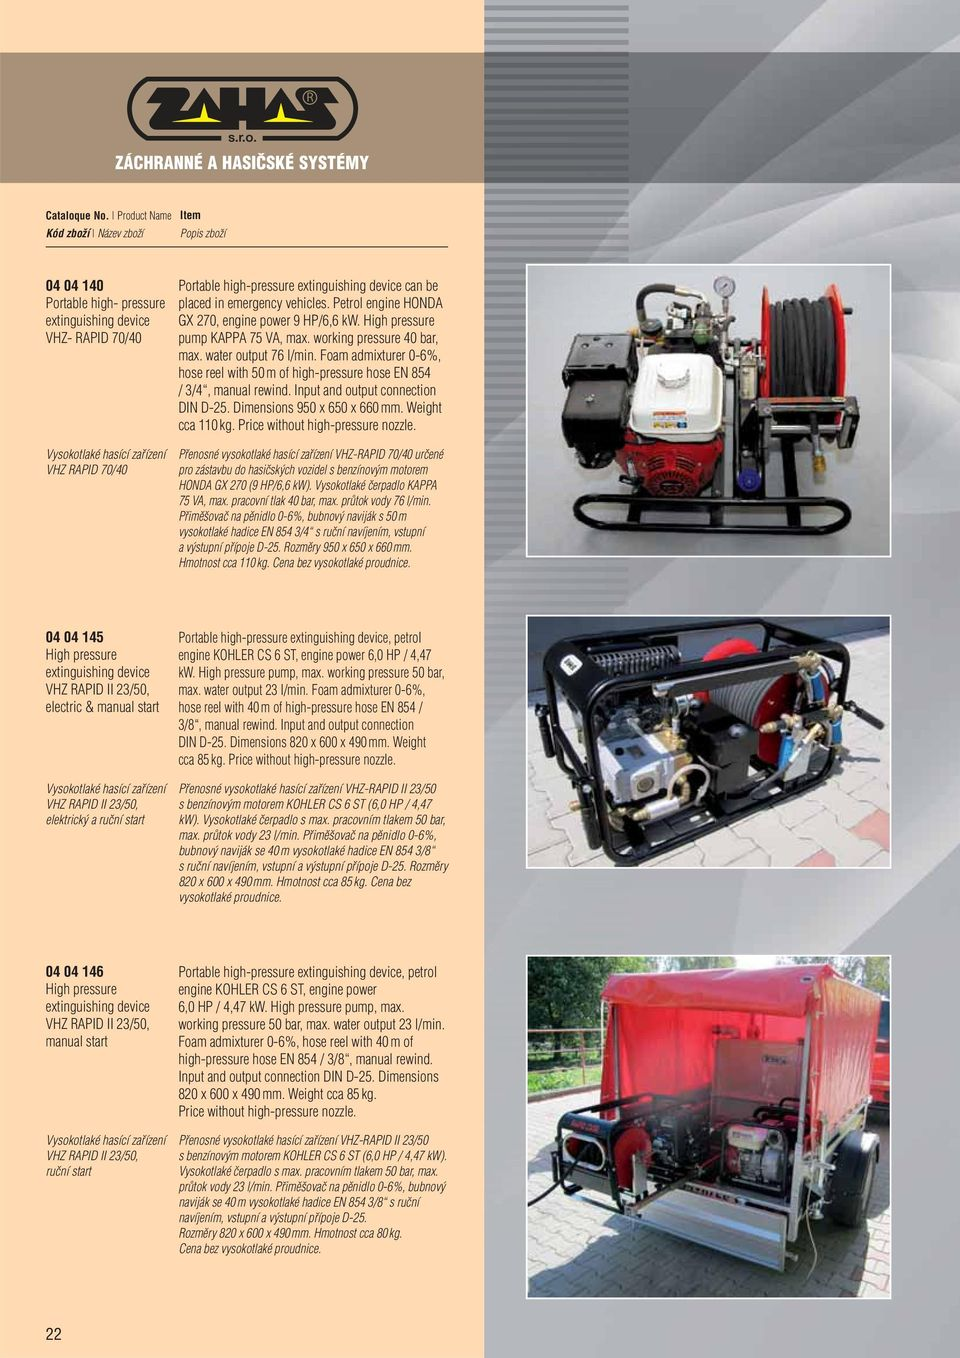 Foam admixturer 0-6%, hose reel with 50 m of high-pressure hose EN 854 / 3/4, manual rewind. Input and output connection DIN D-25. Dimensions 950 x 650 x 660 mm. Weight cca 110 kg.